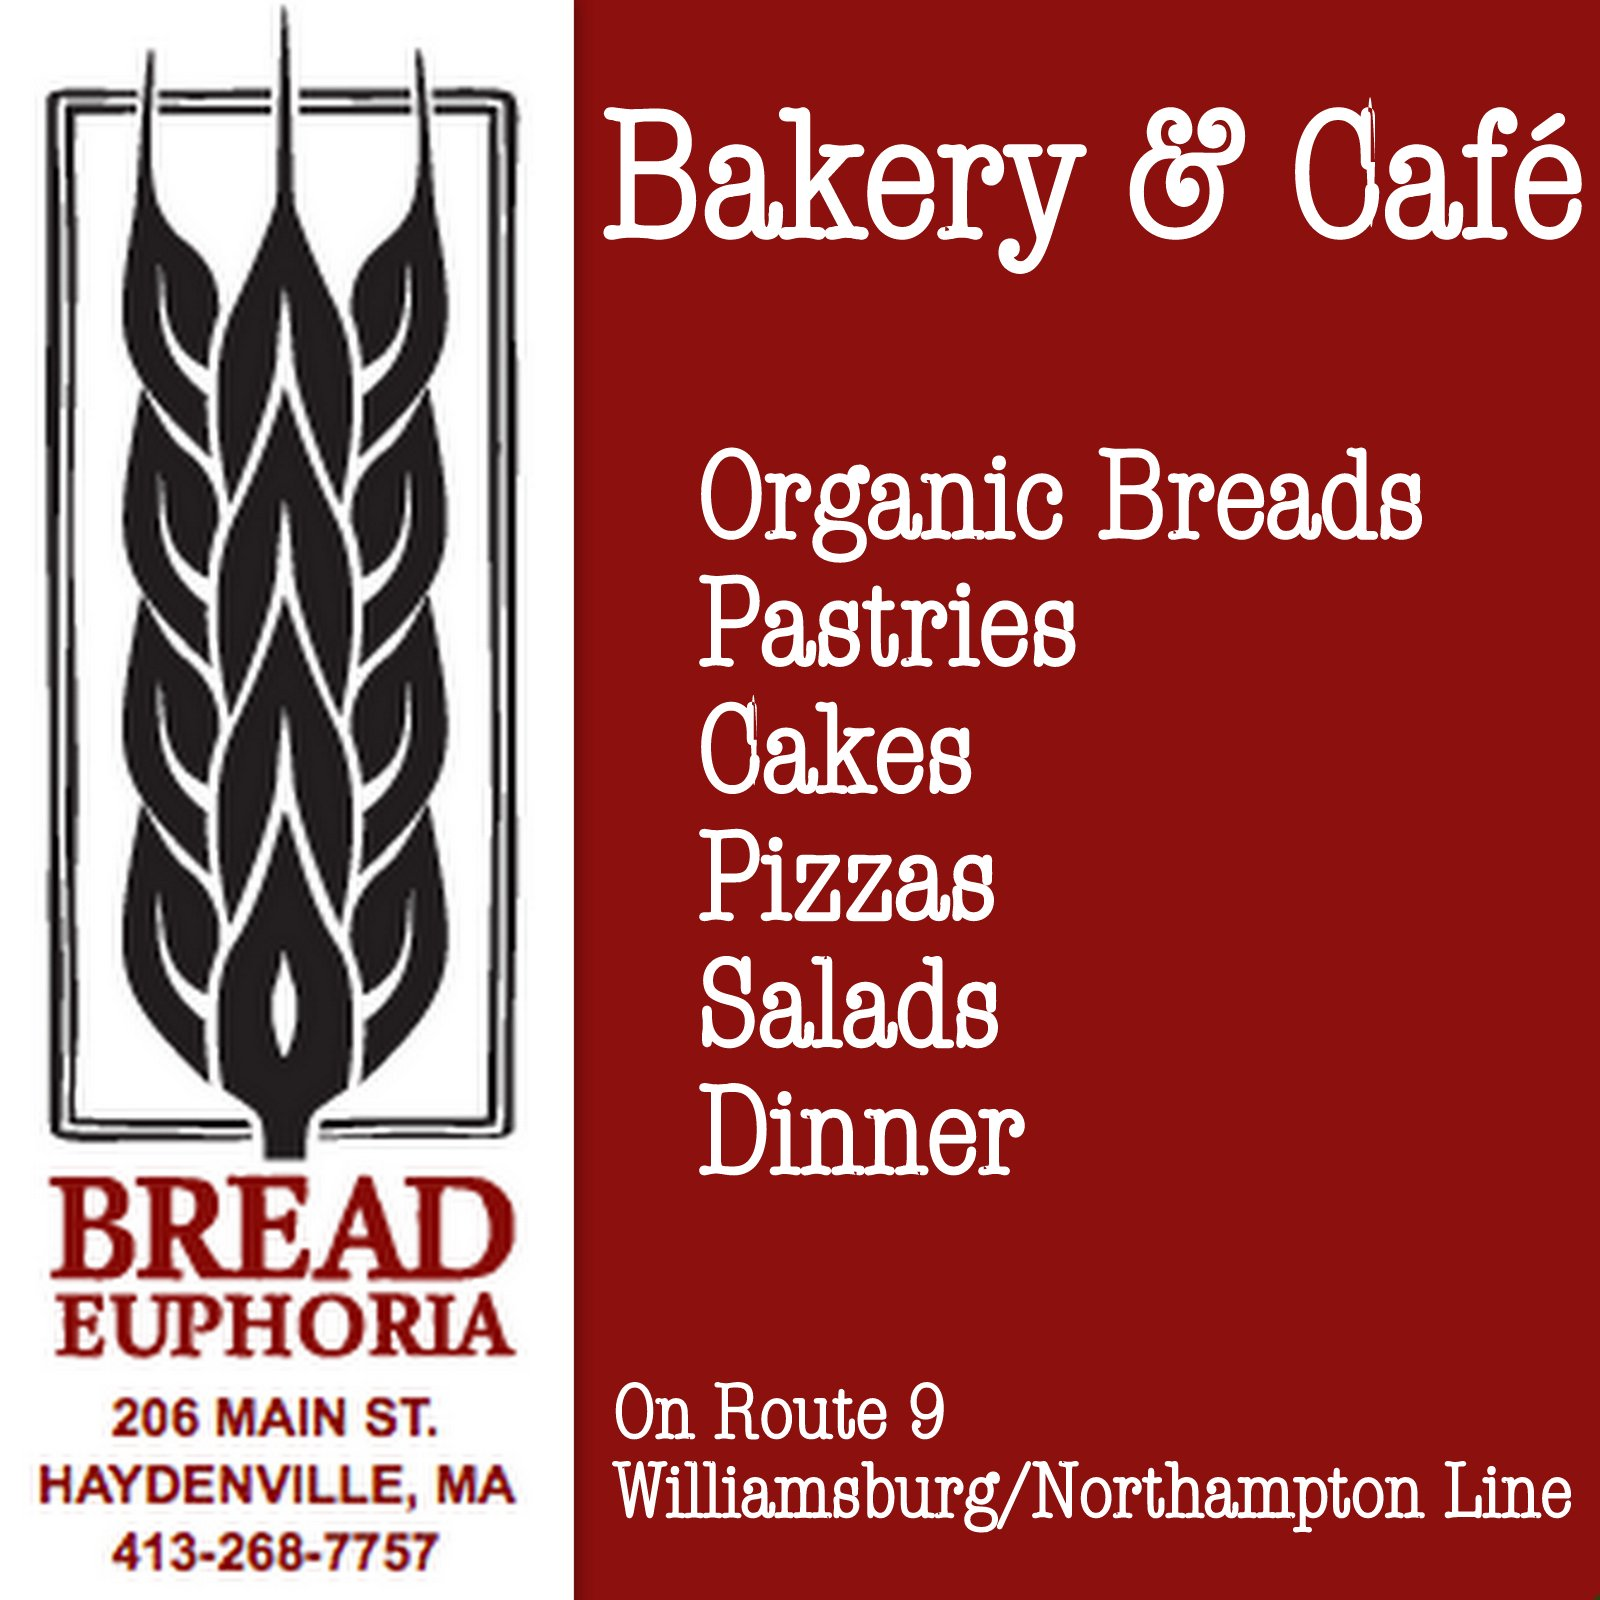 Sponsor image for Bread Euphoria Bakery & Cafe